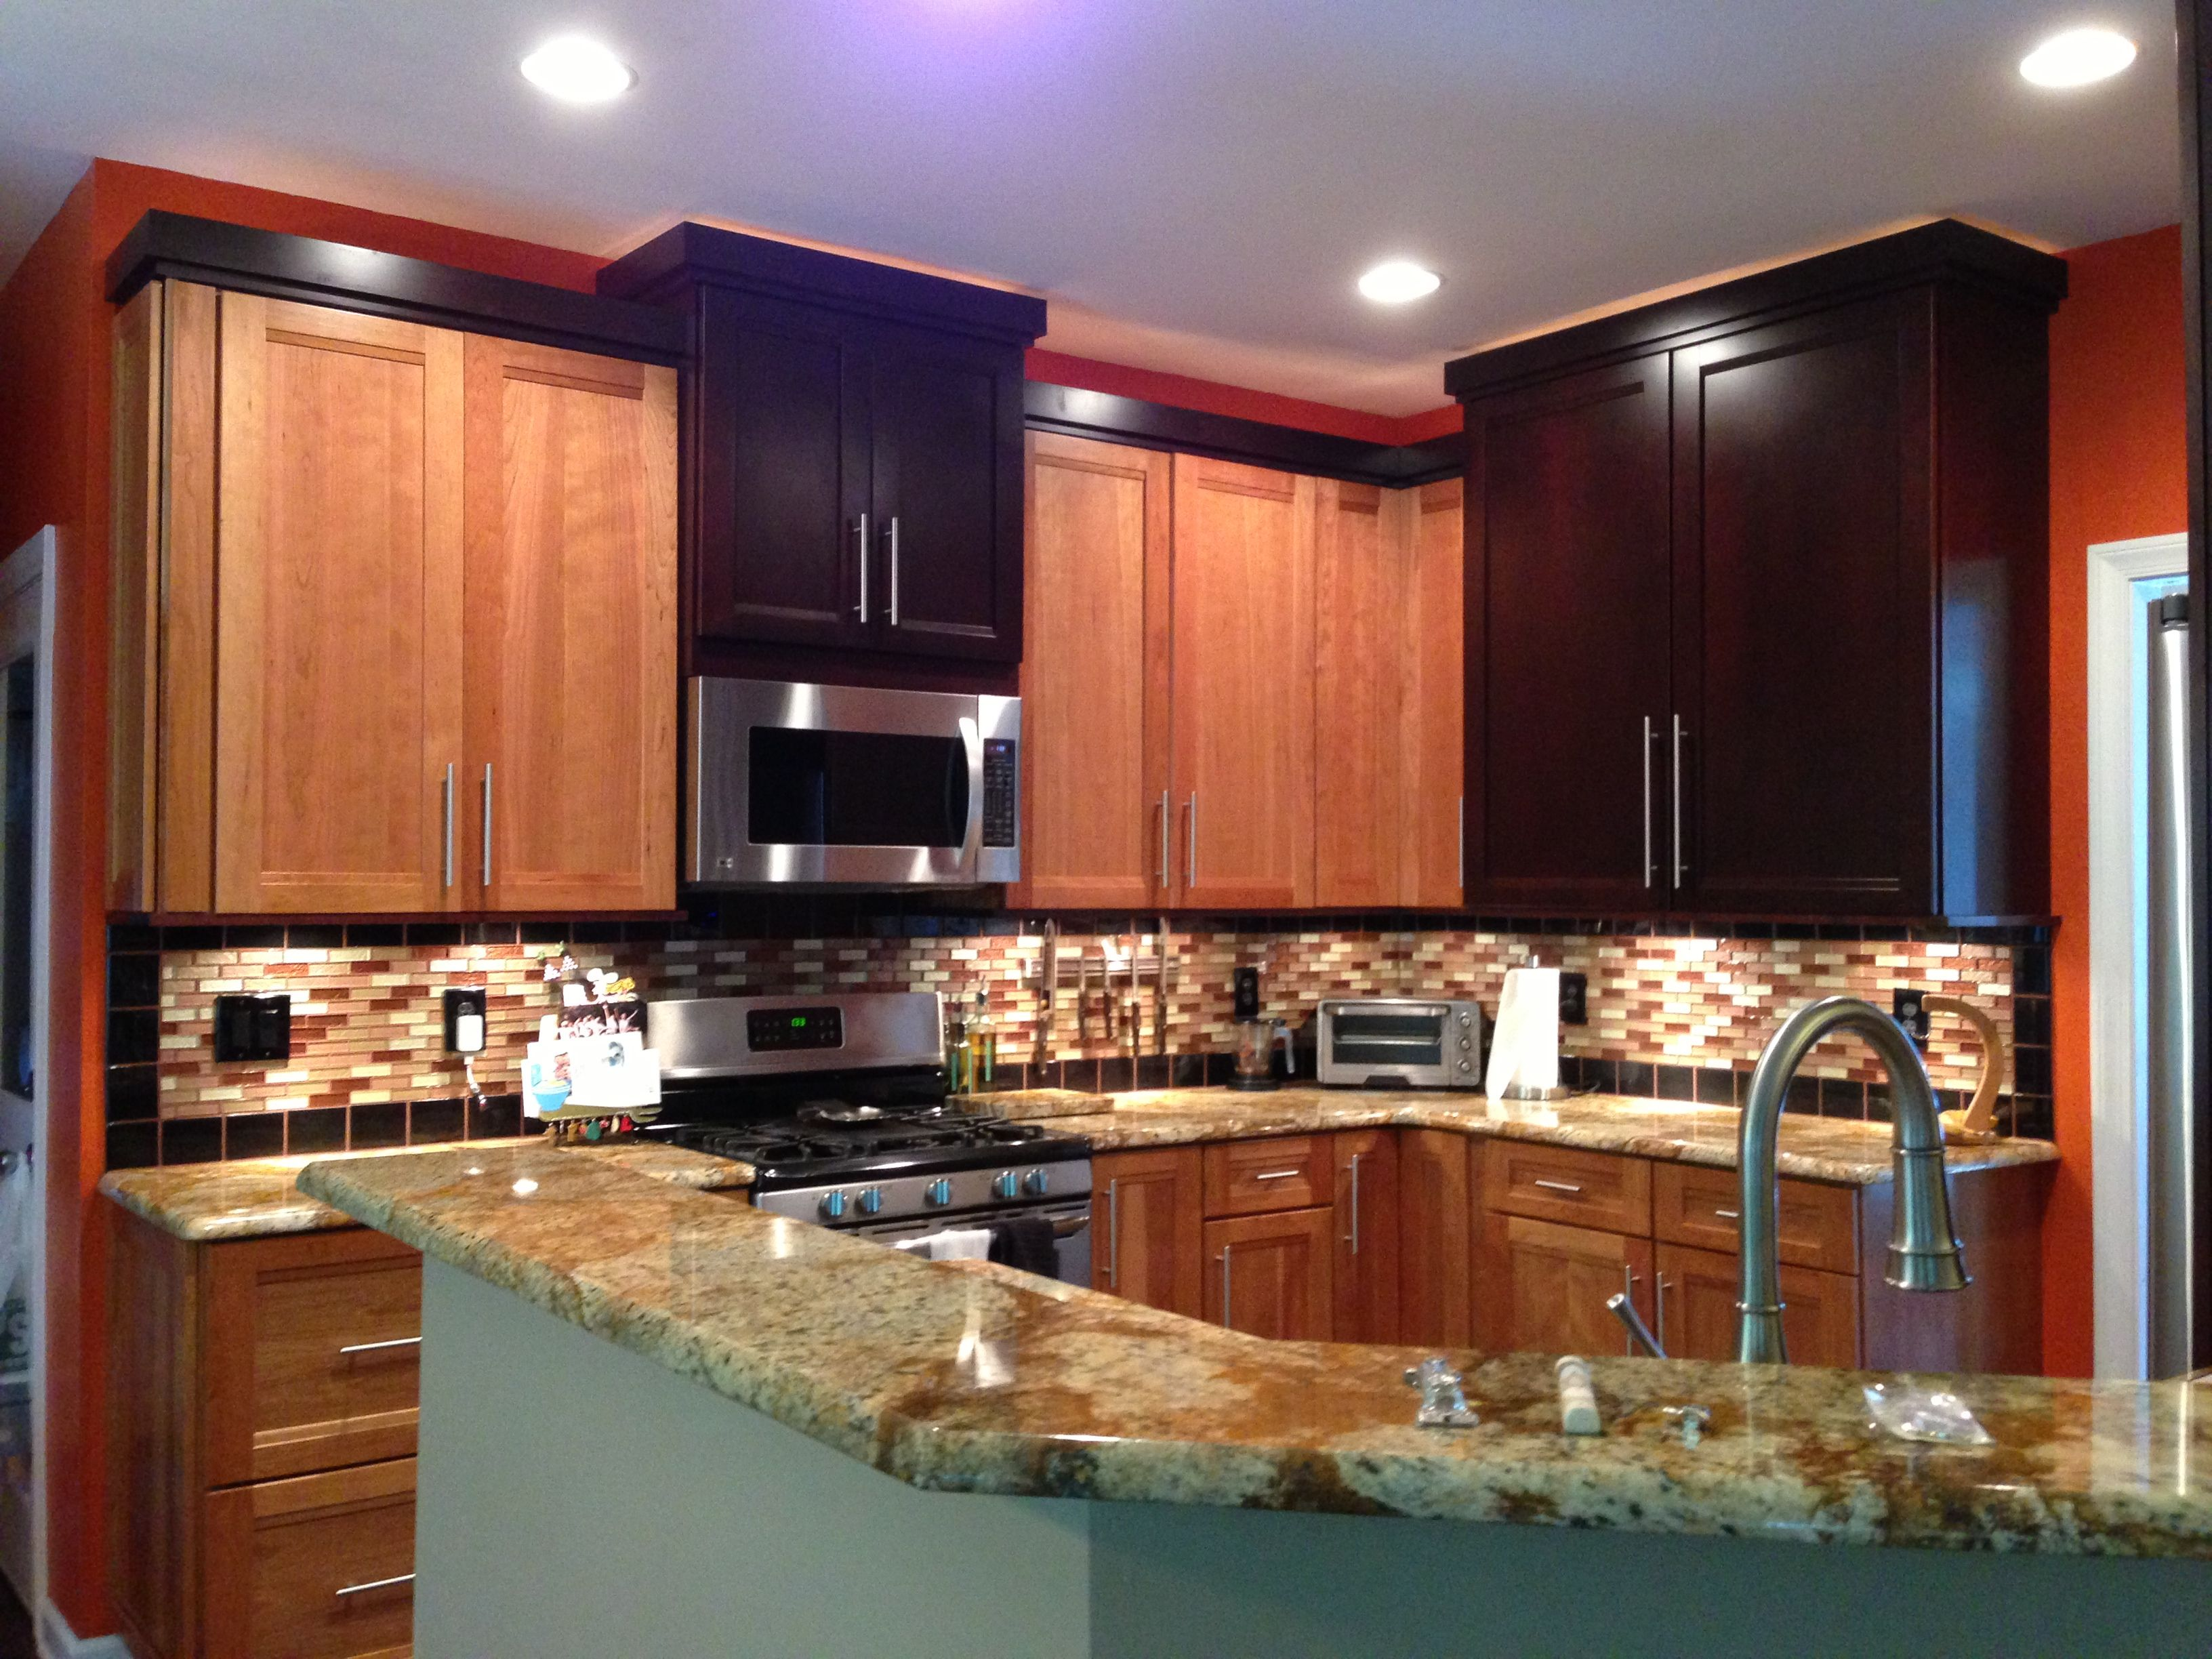 Best Mix Of Light And Dark Cherry Cabinets Cherry Cabinets 400 x 300